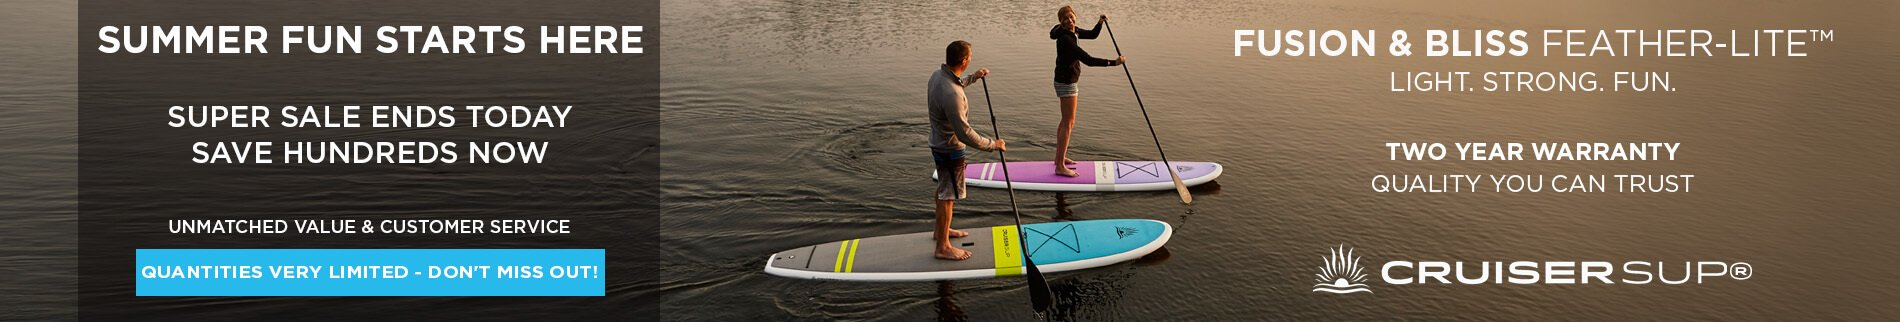 Fusion - Bliss - FeatherLite Stand Up Paddle Boards